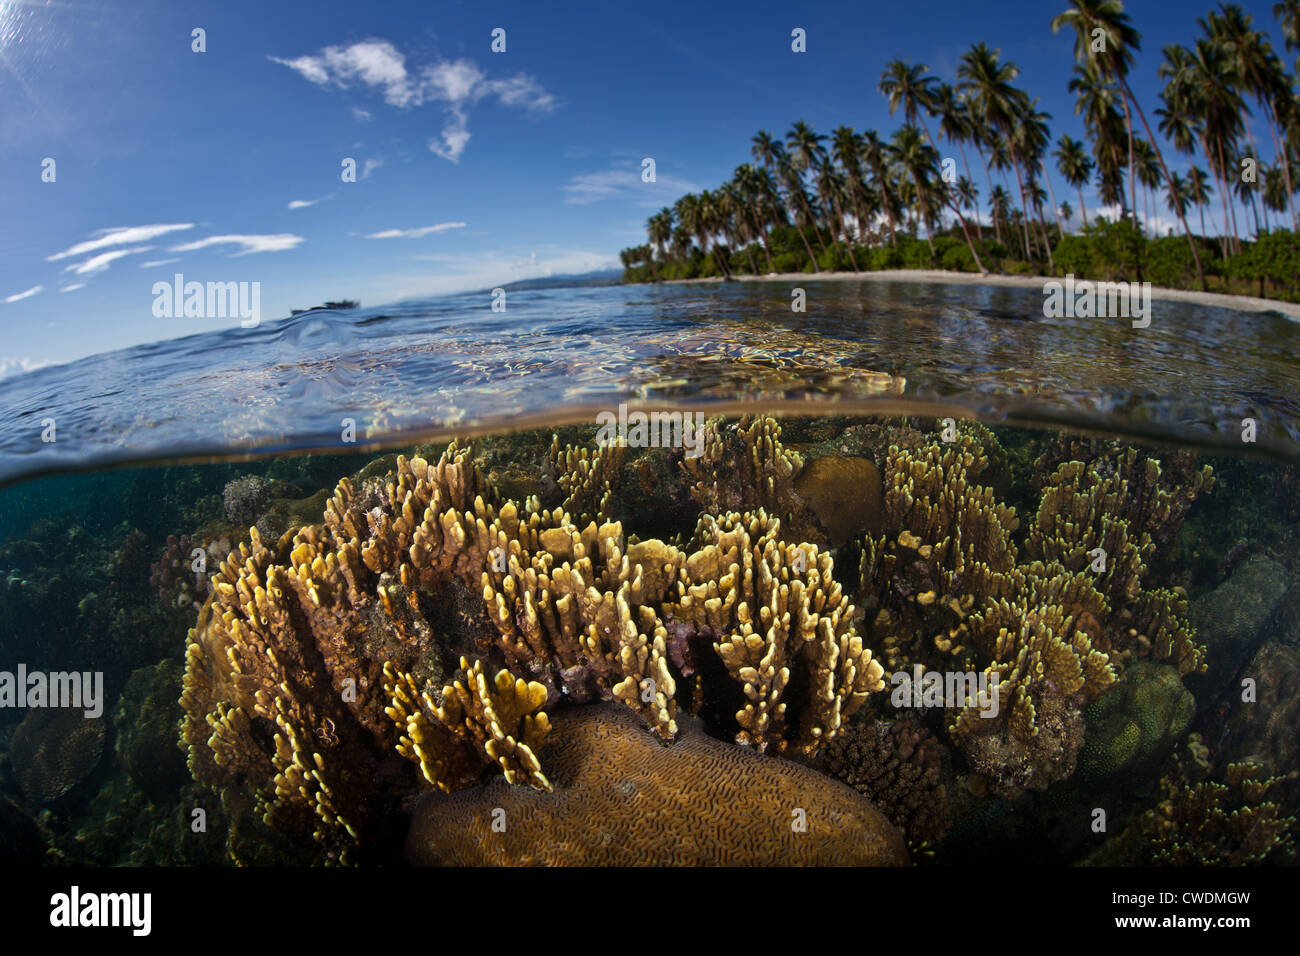 A colony of fire coral, Millipora sp., grows just under the low tide line near a white sand beach off Guadalcanal. - Stock Image